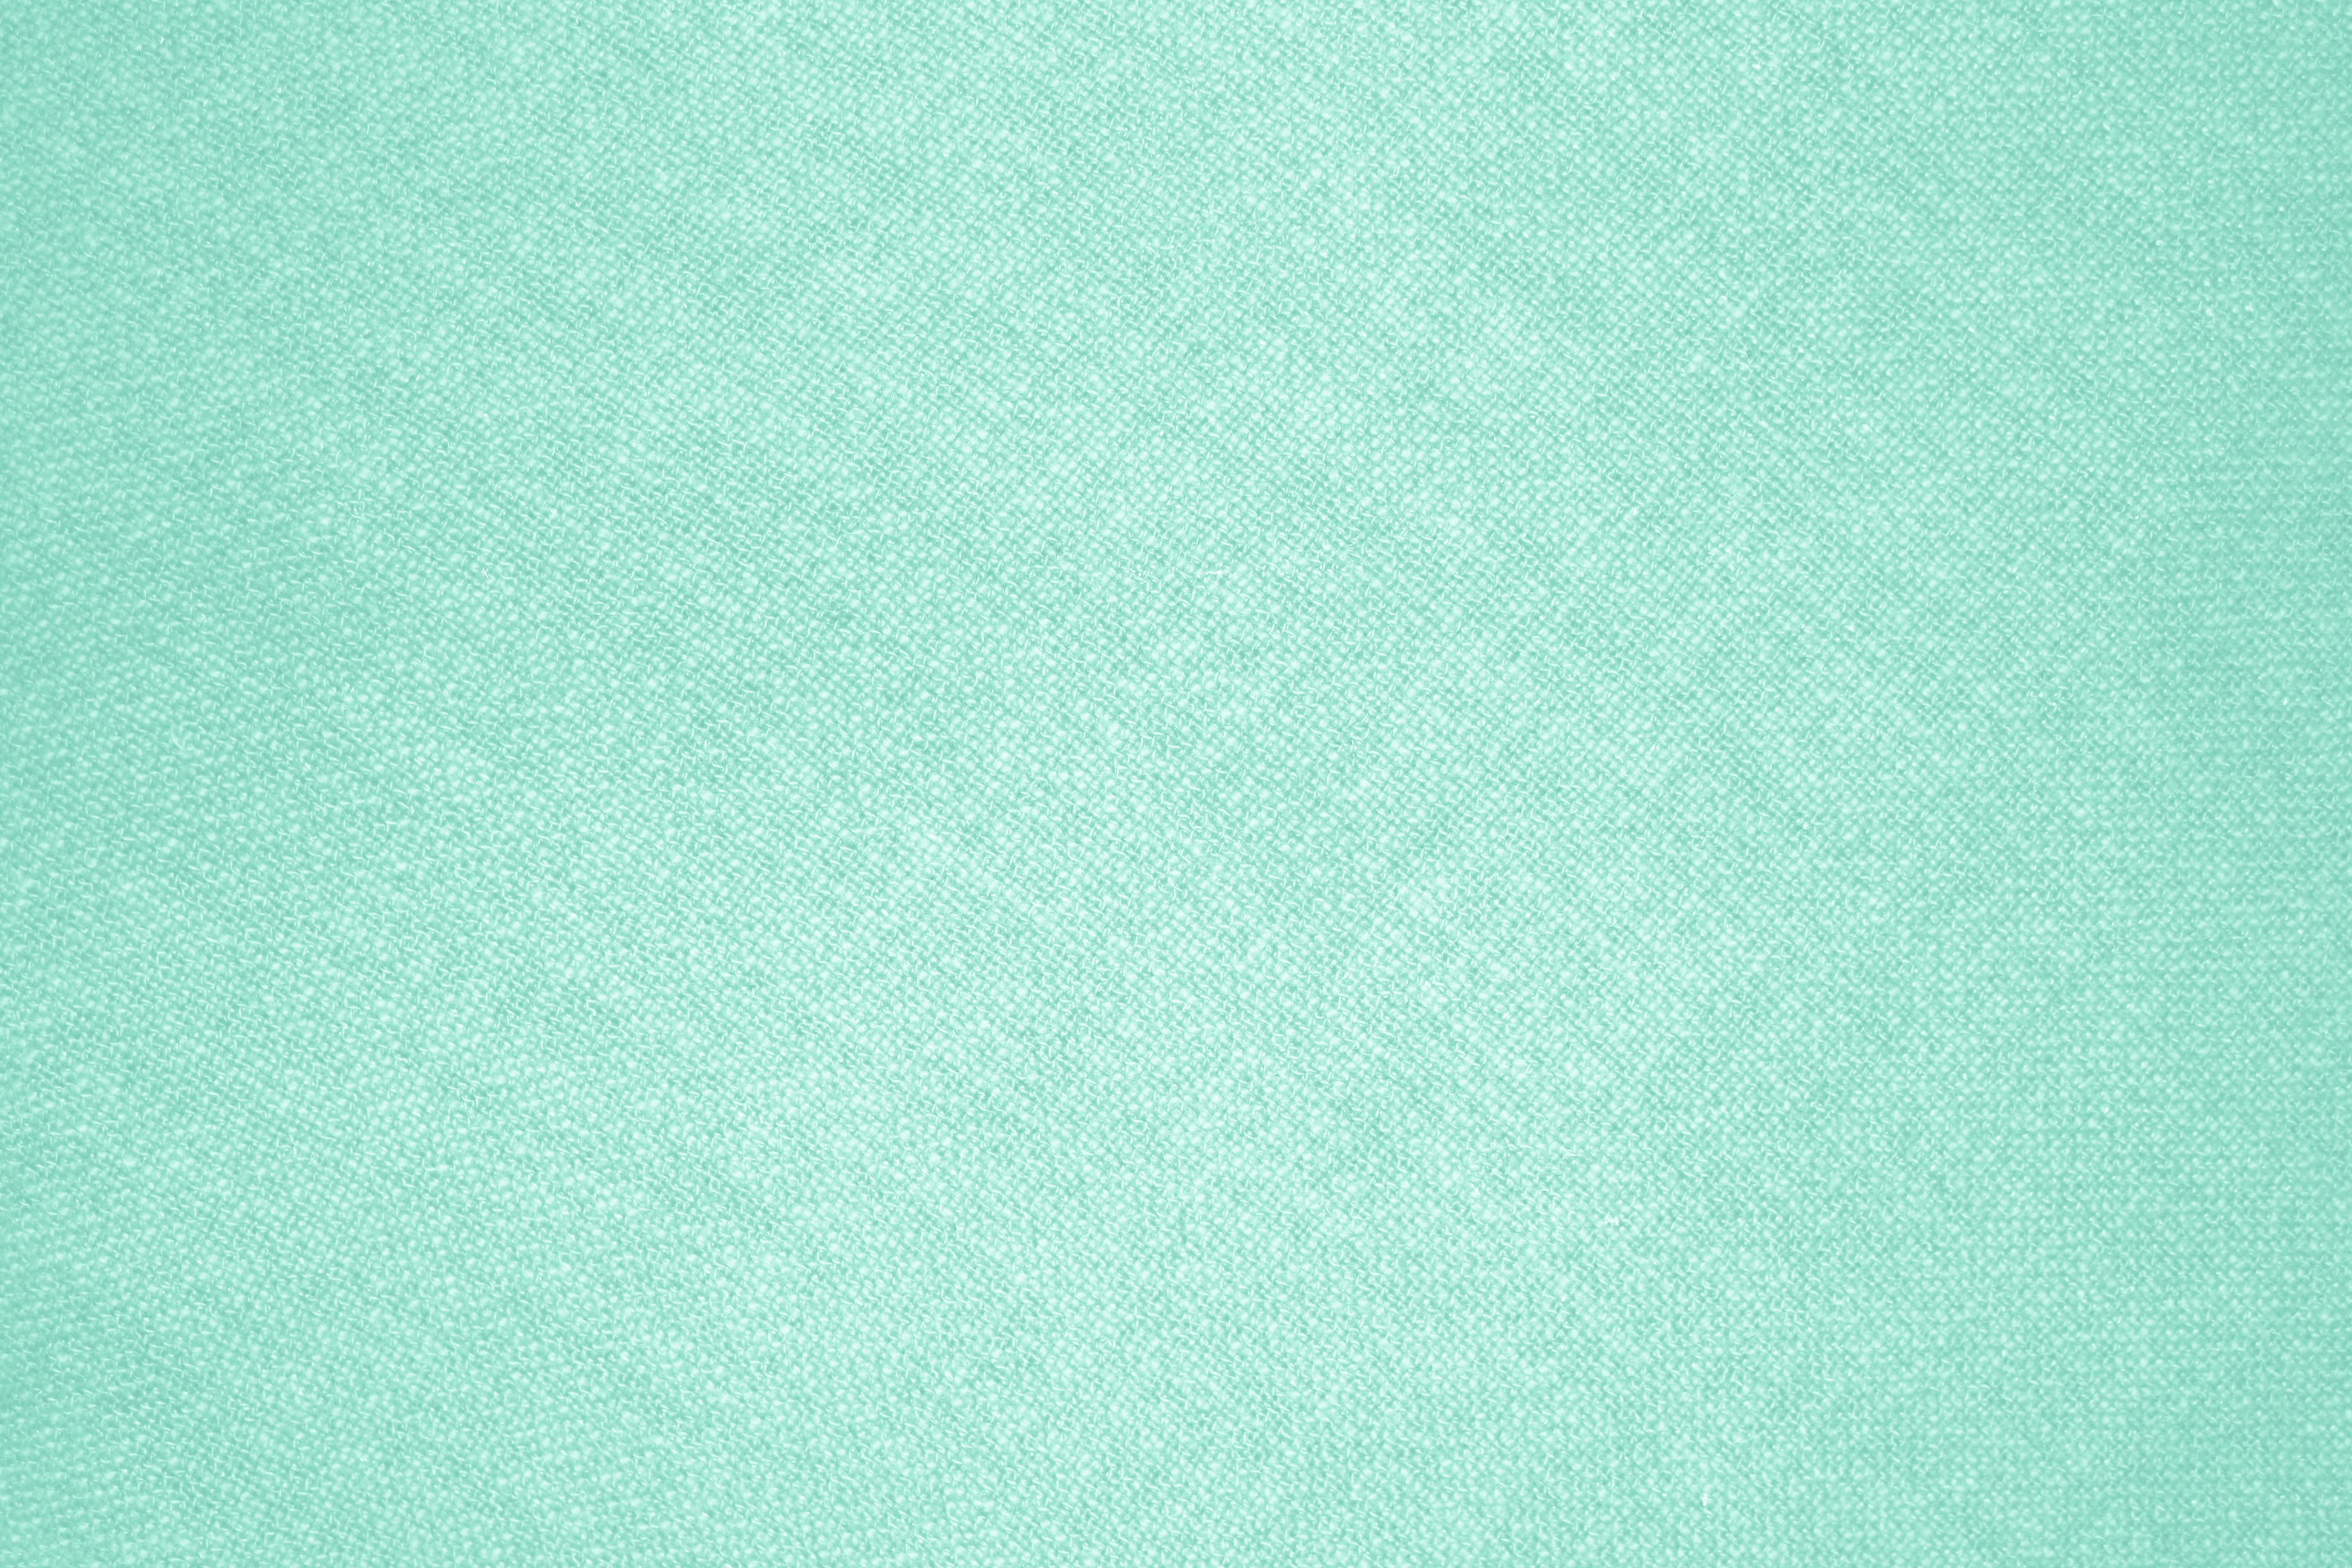 Aqua Colored Fabric Texture Picture Free Photograph